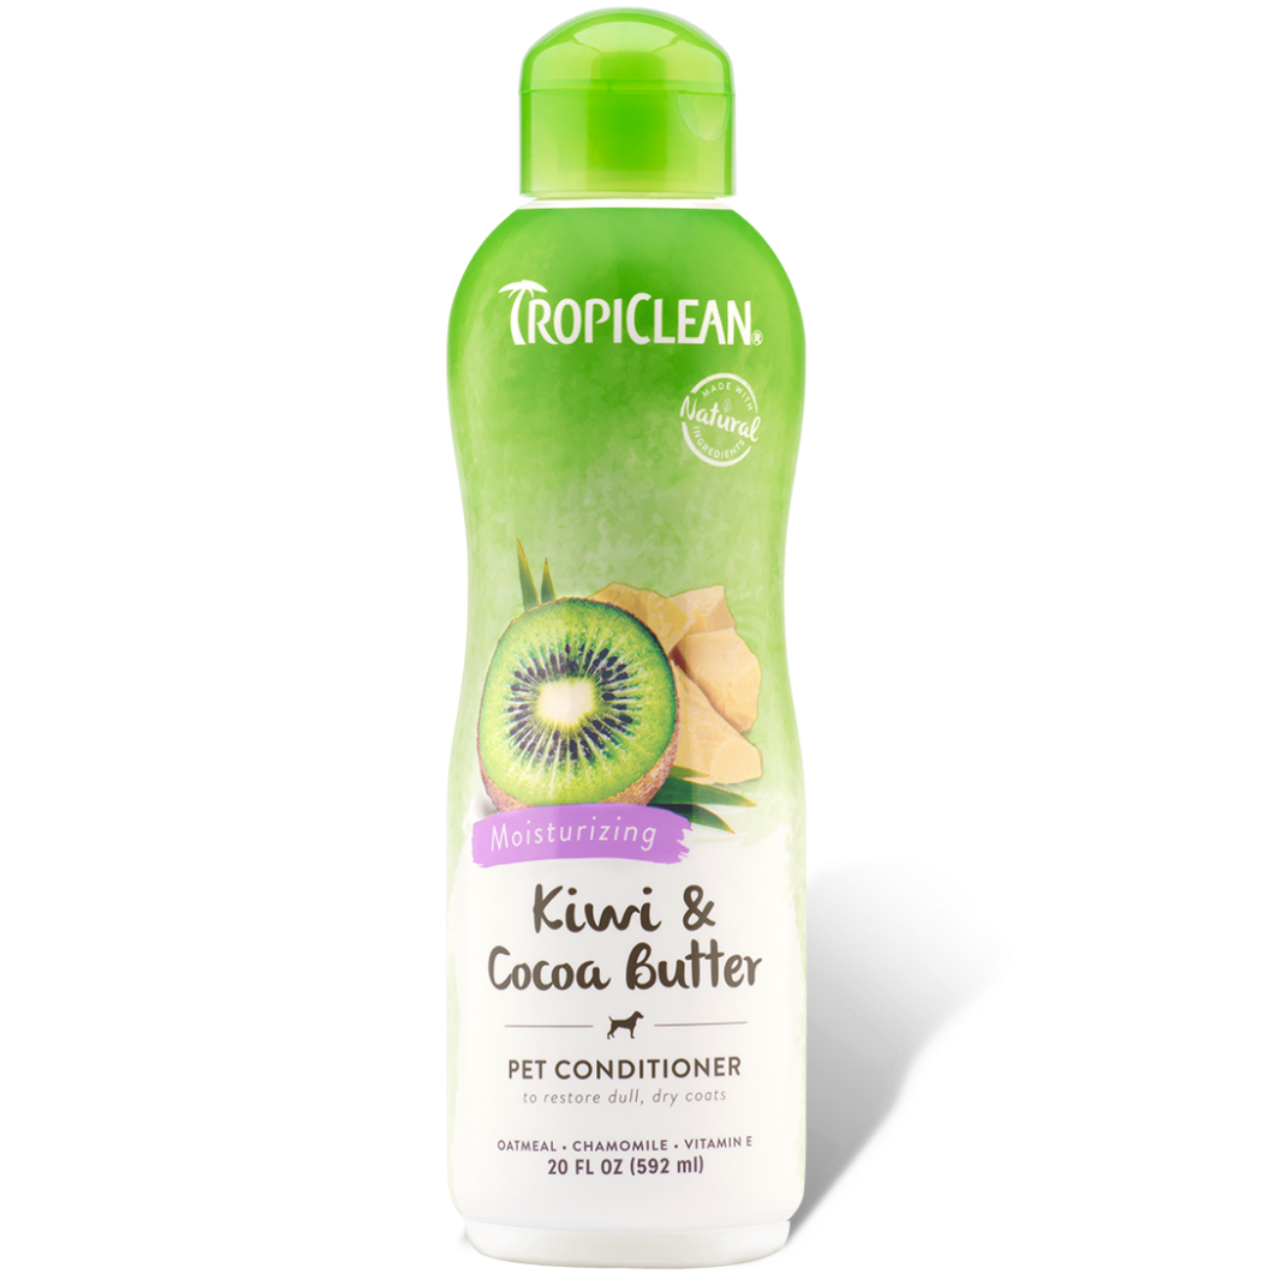 Tropiclean Pet Conditioner -Kiwi & Cocoa Butter